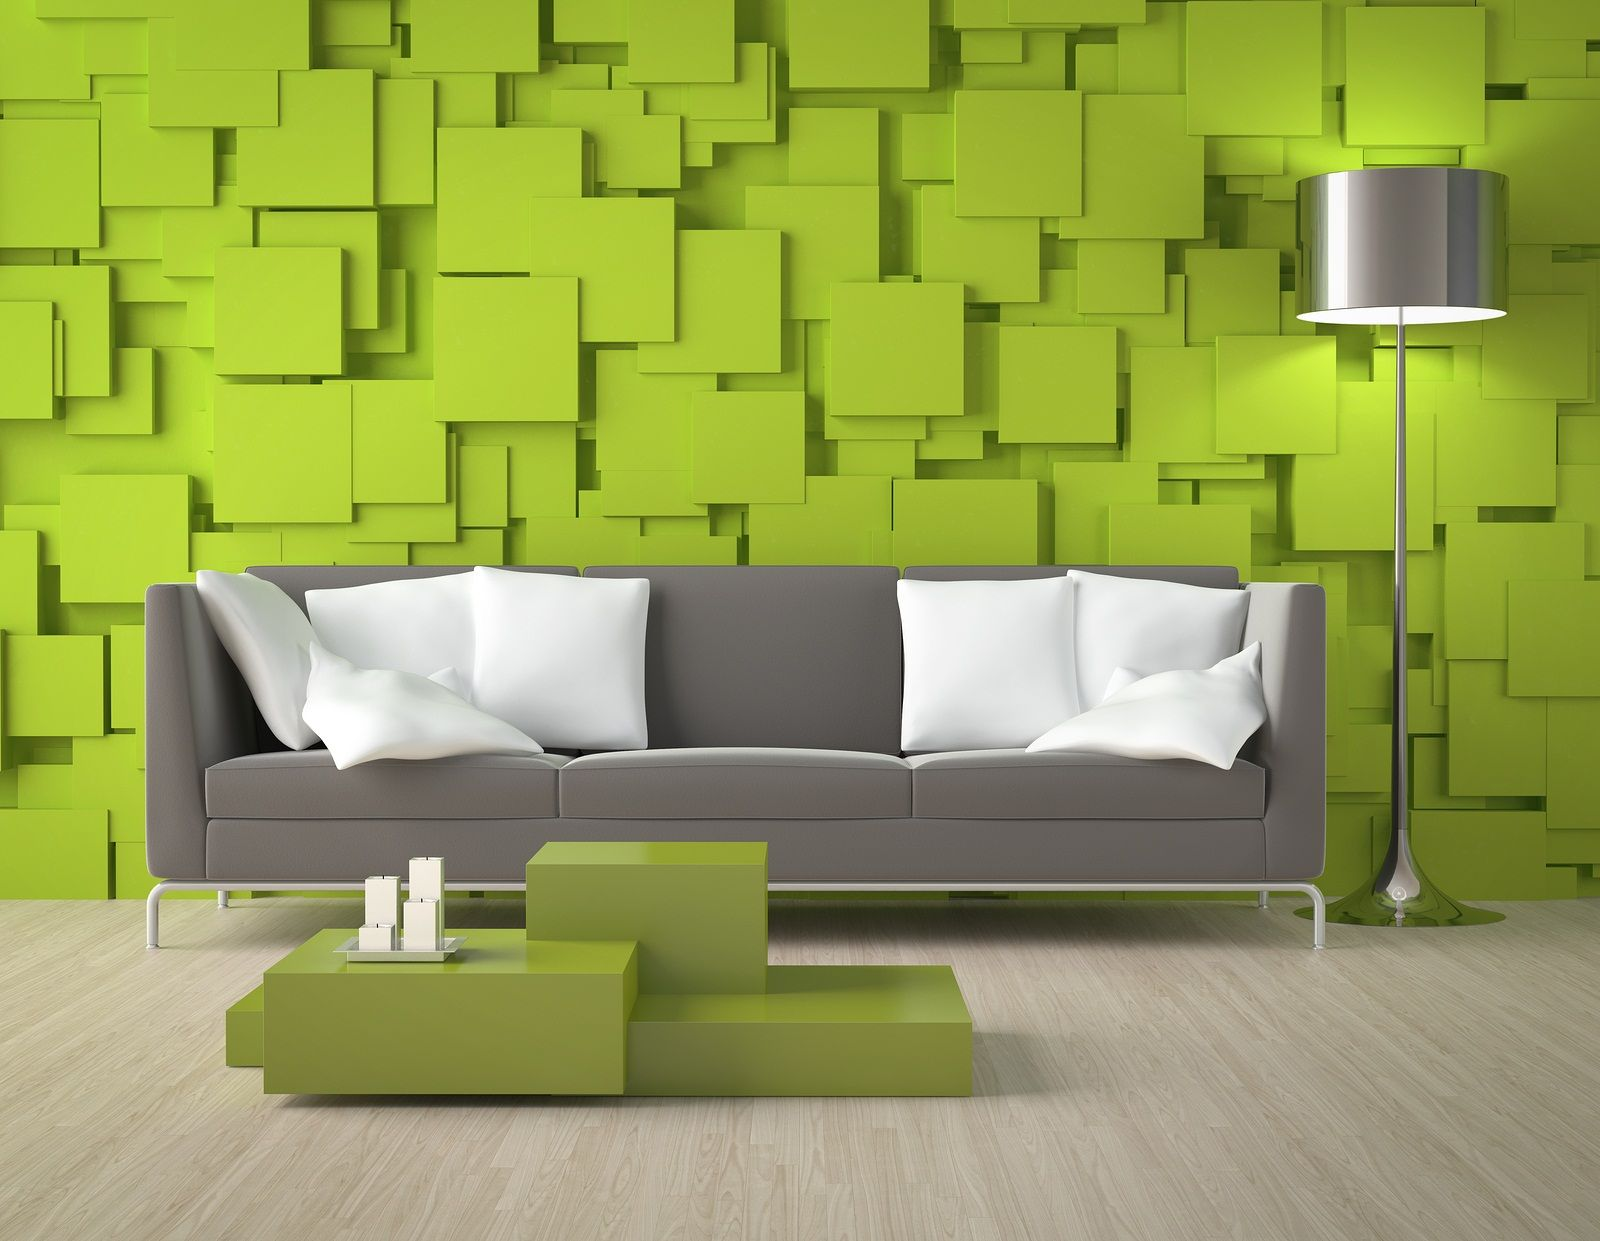 Wall Decor For Living Room Inside Modern Living Room Wall Color